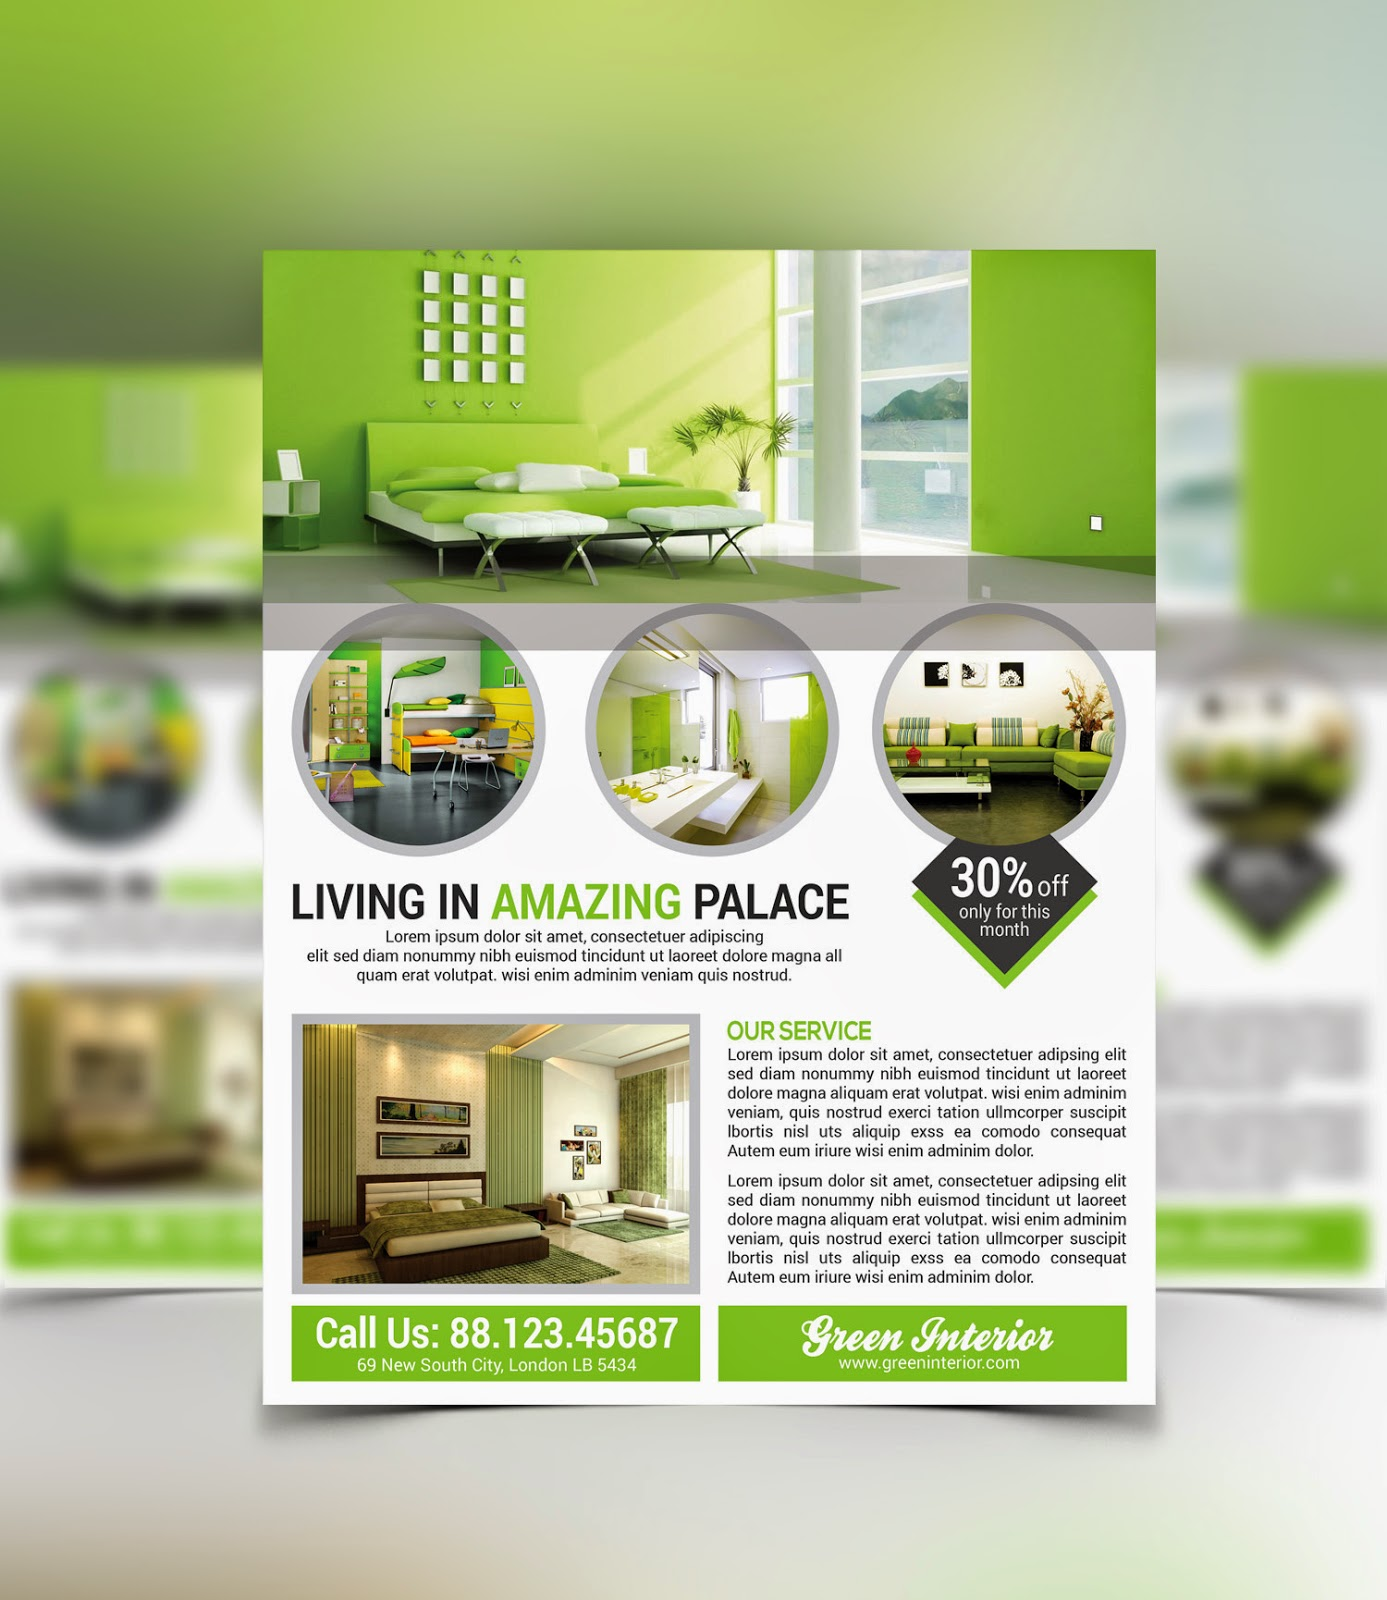 Free Interior Design Software For Pc: 16 PSD Brochure Computer Rentals Templates Images